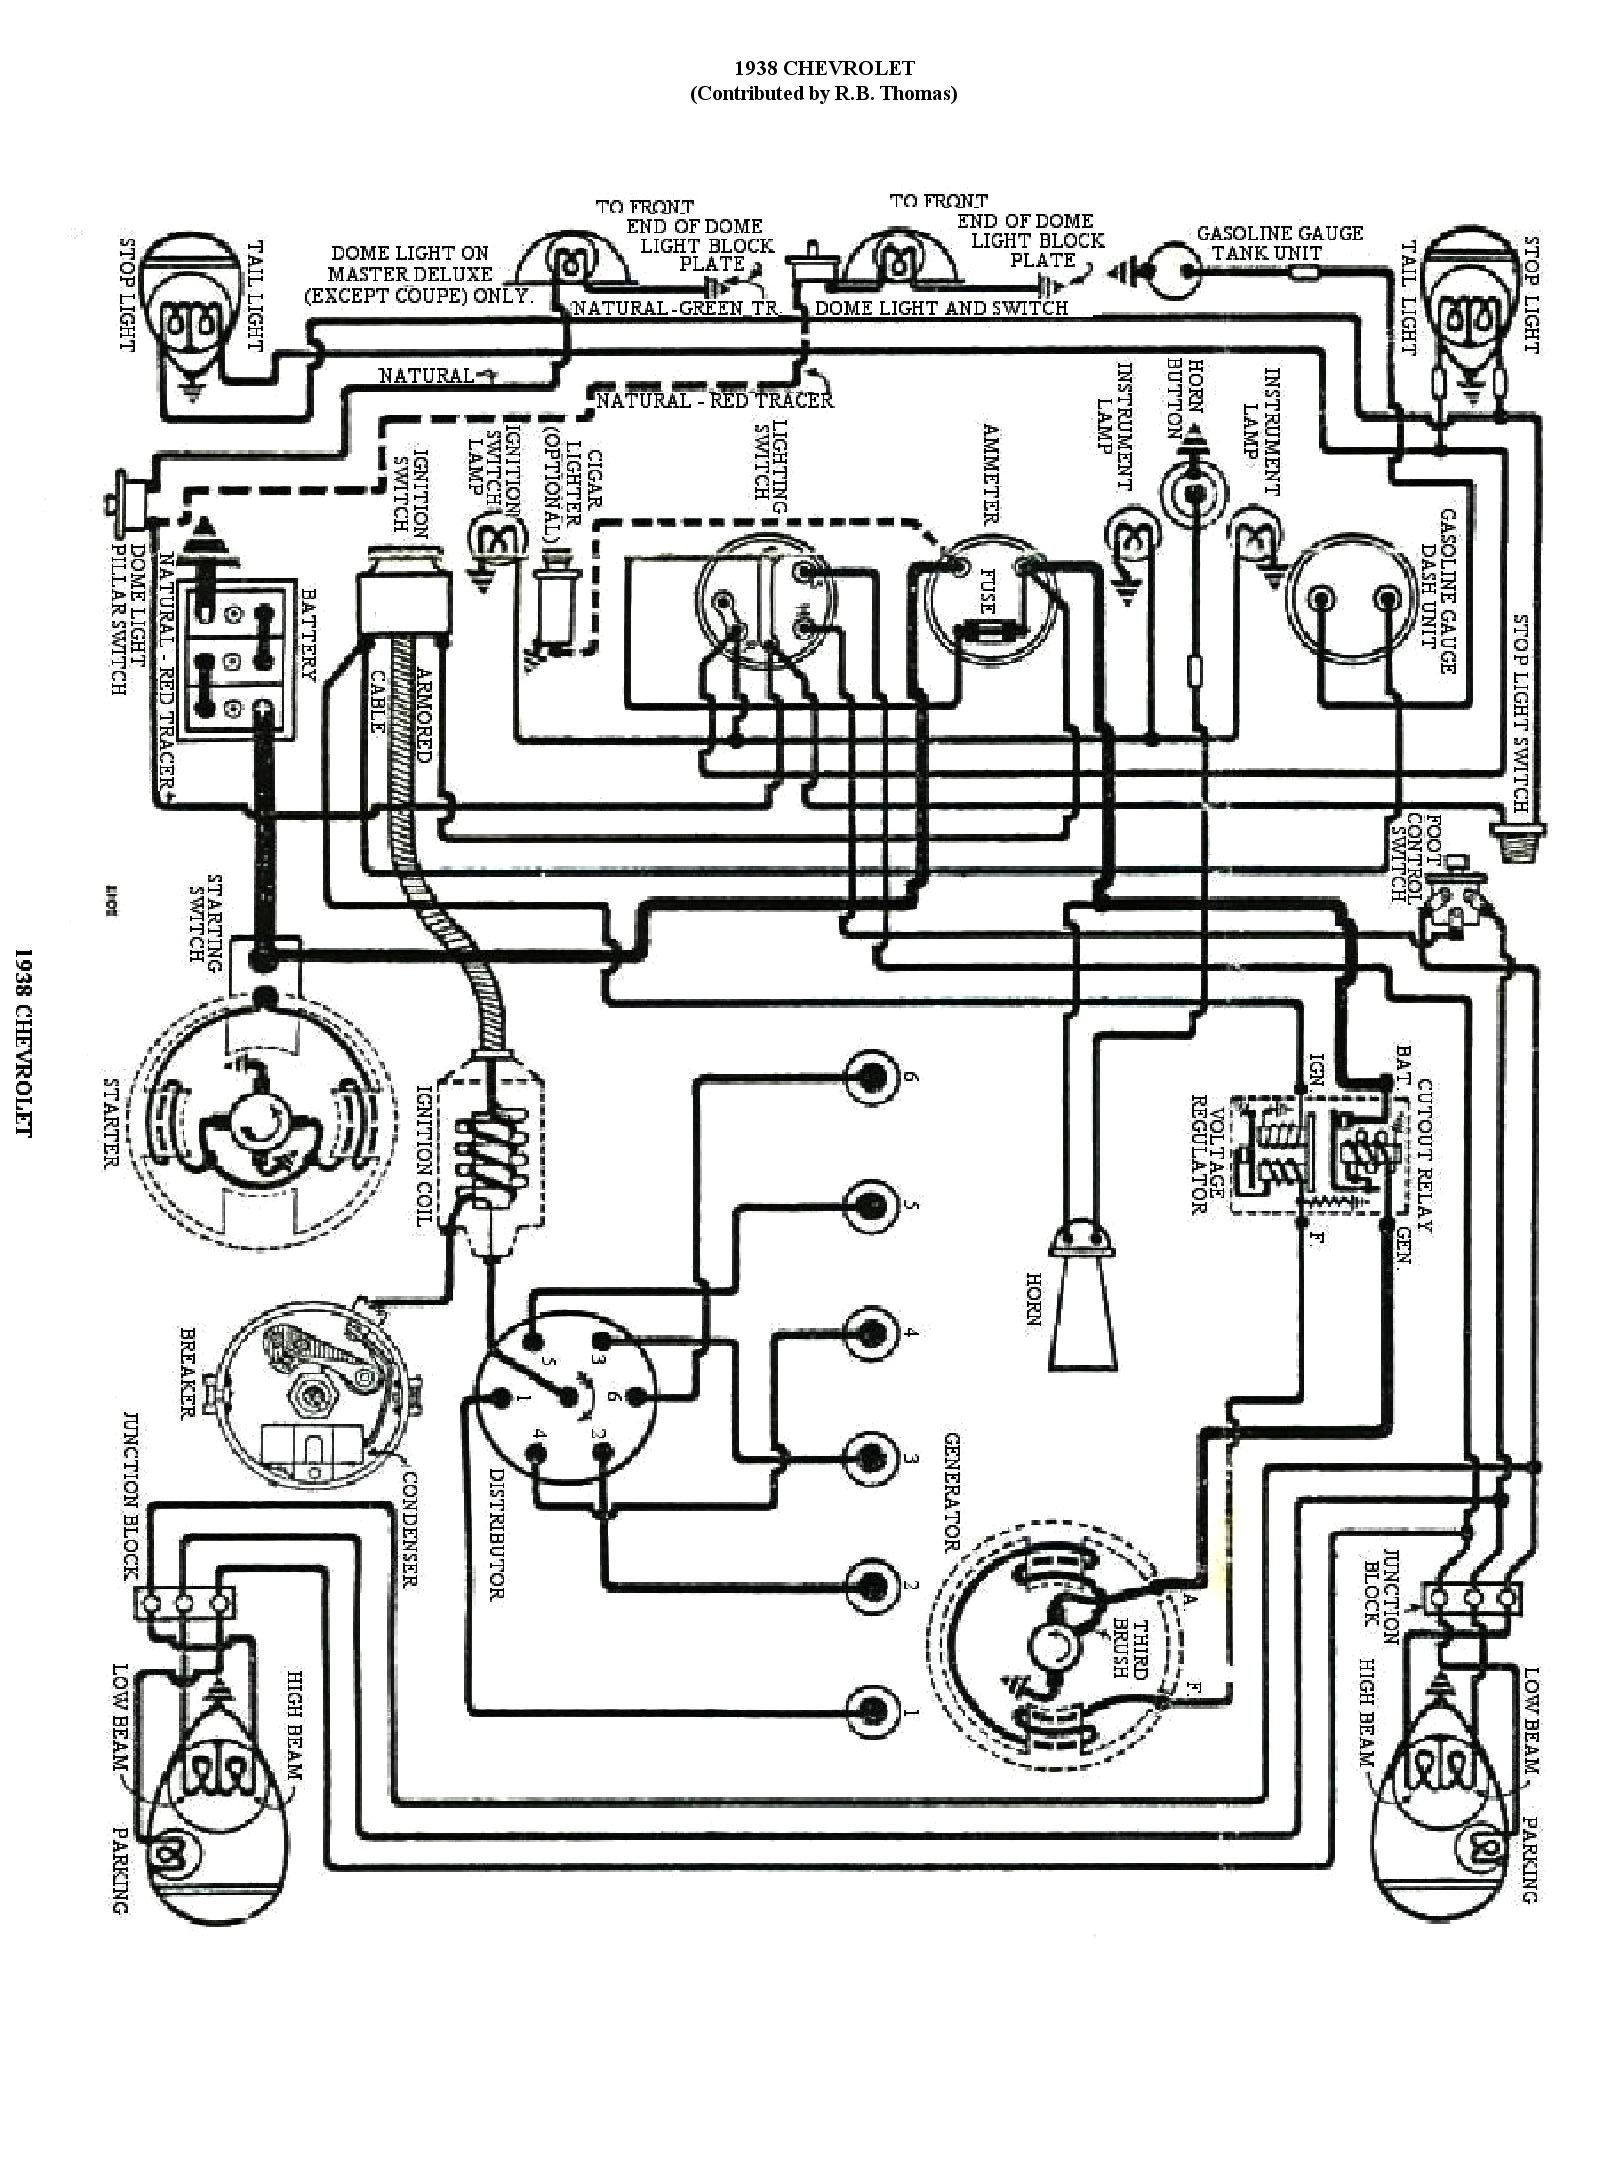 1927 buick wiring diagram